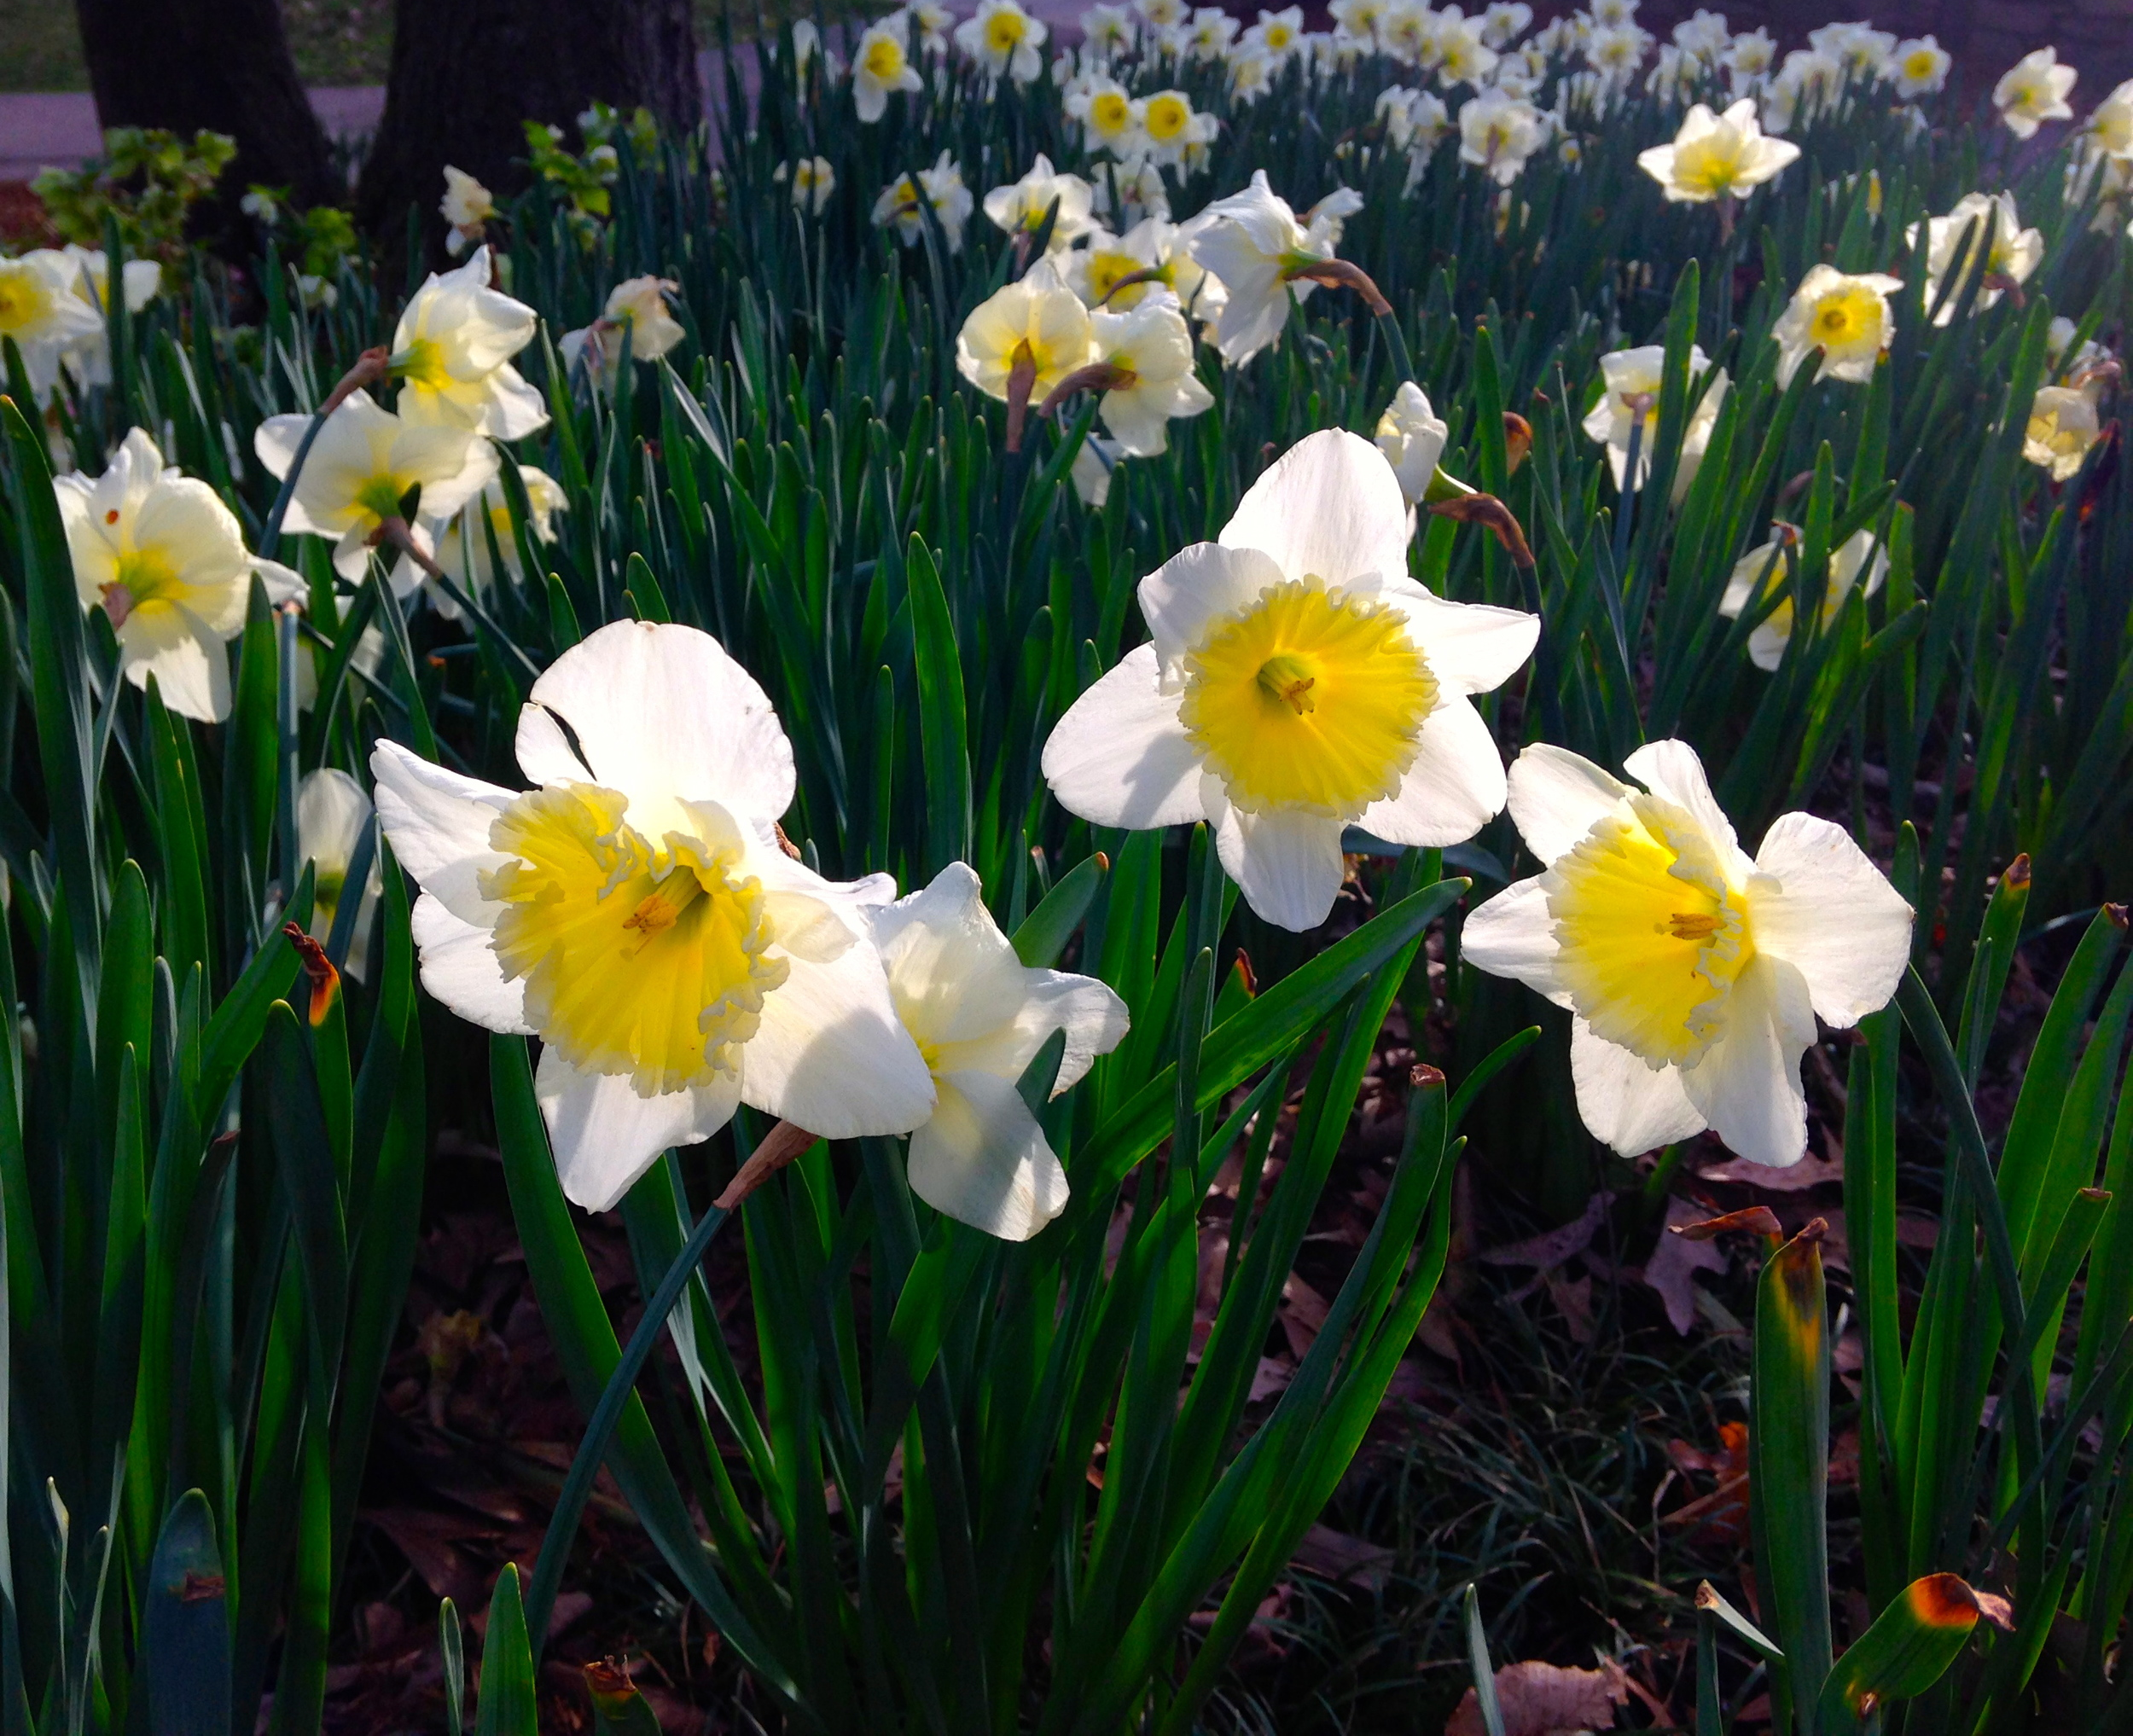 Further affirmation that spring is here. Sunlight through daffodils in Falls Park.